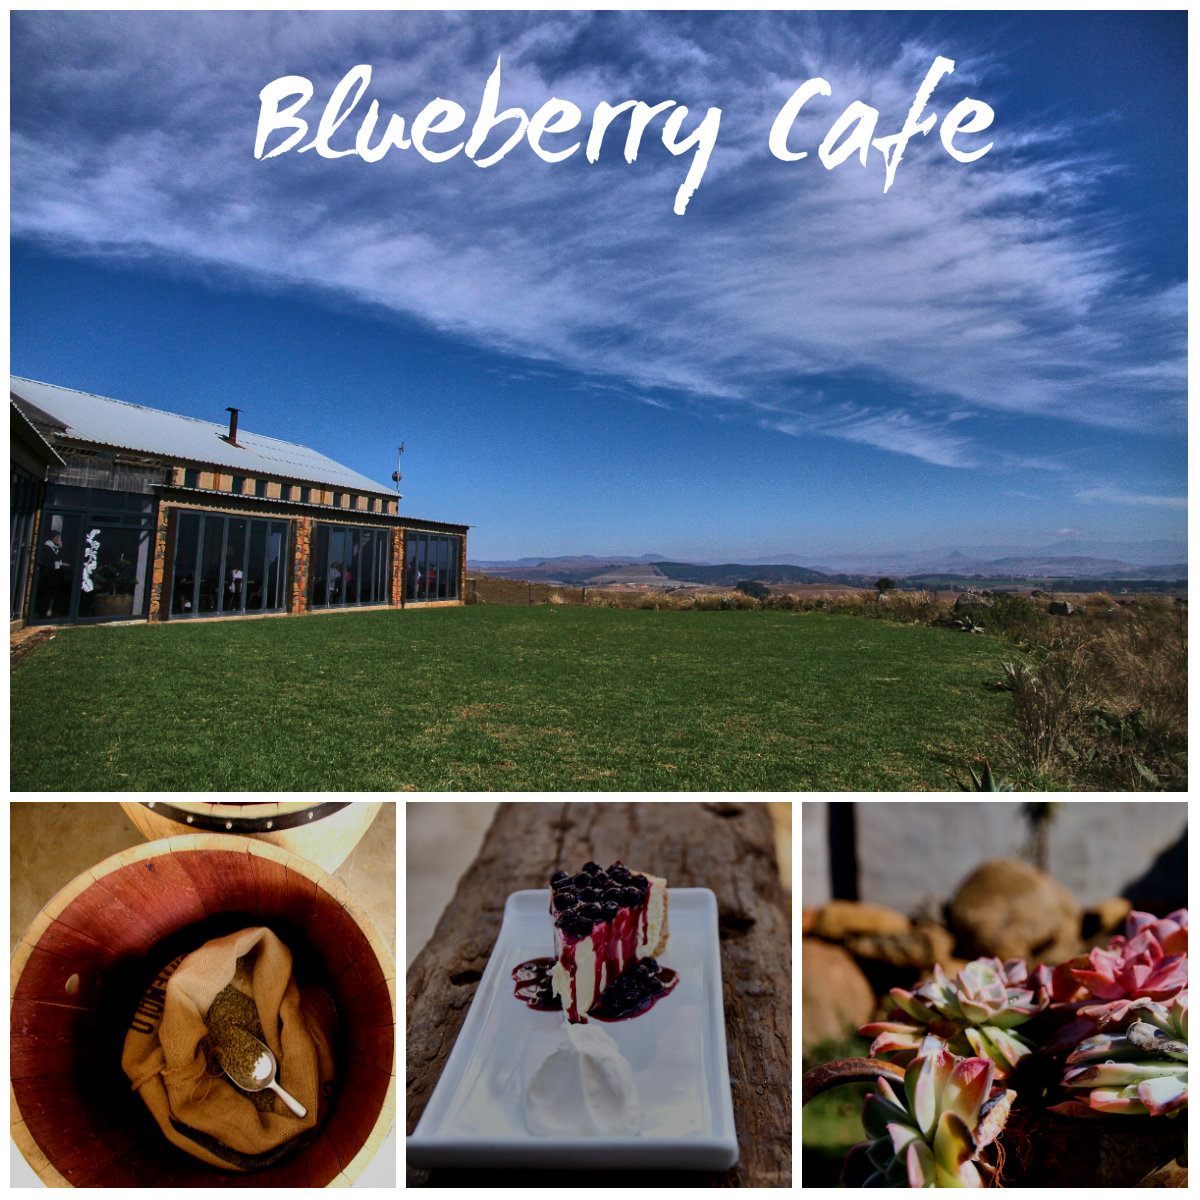 blueberry cafe restaurant midlands meander